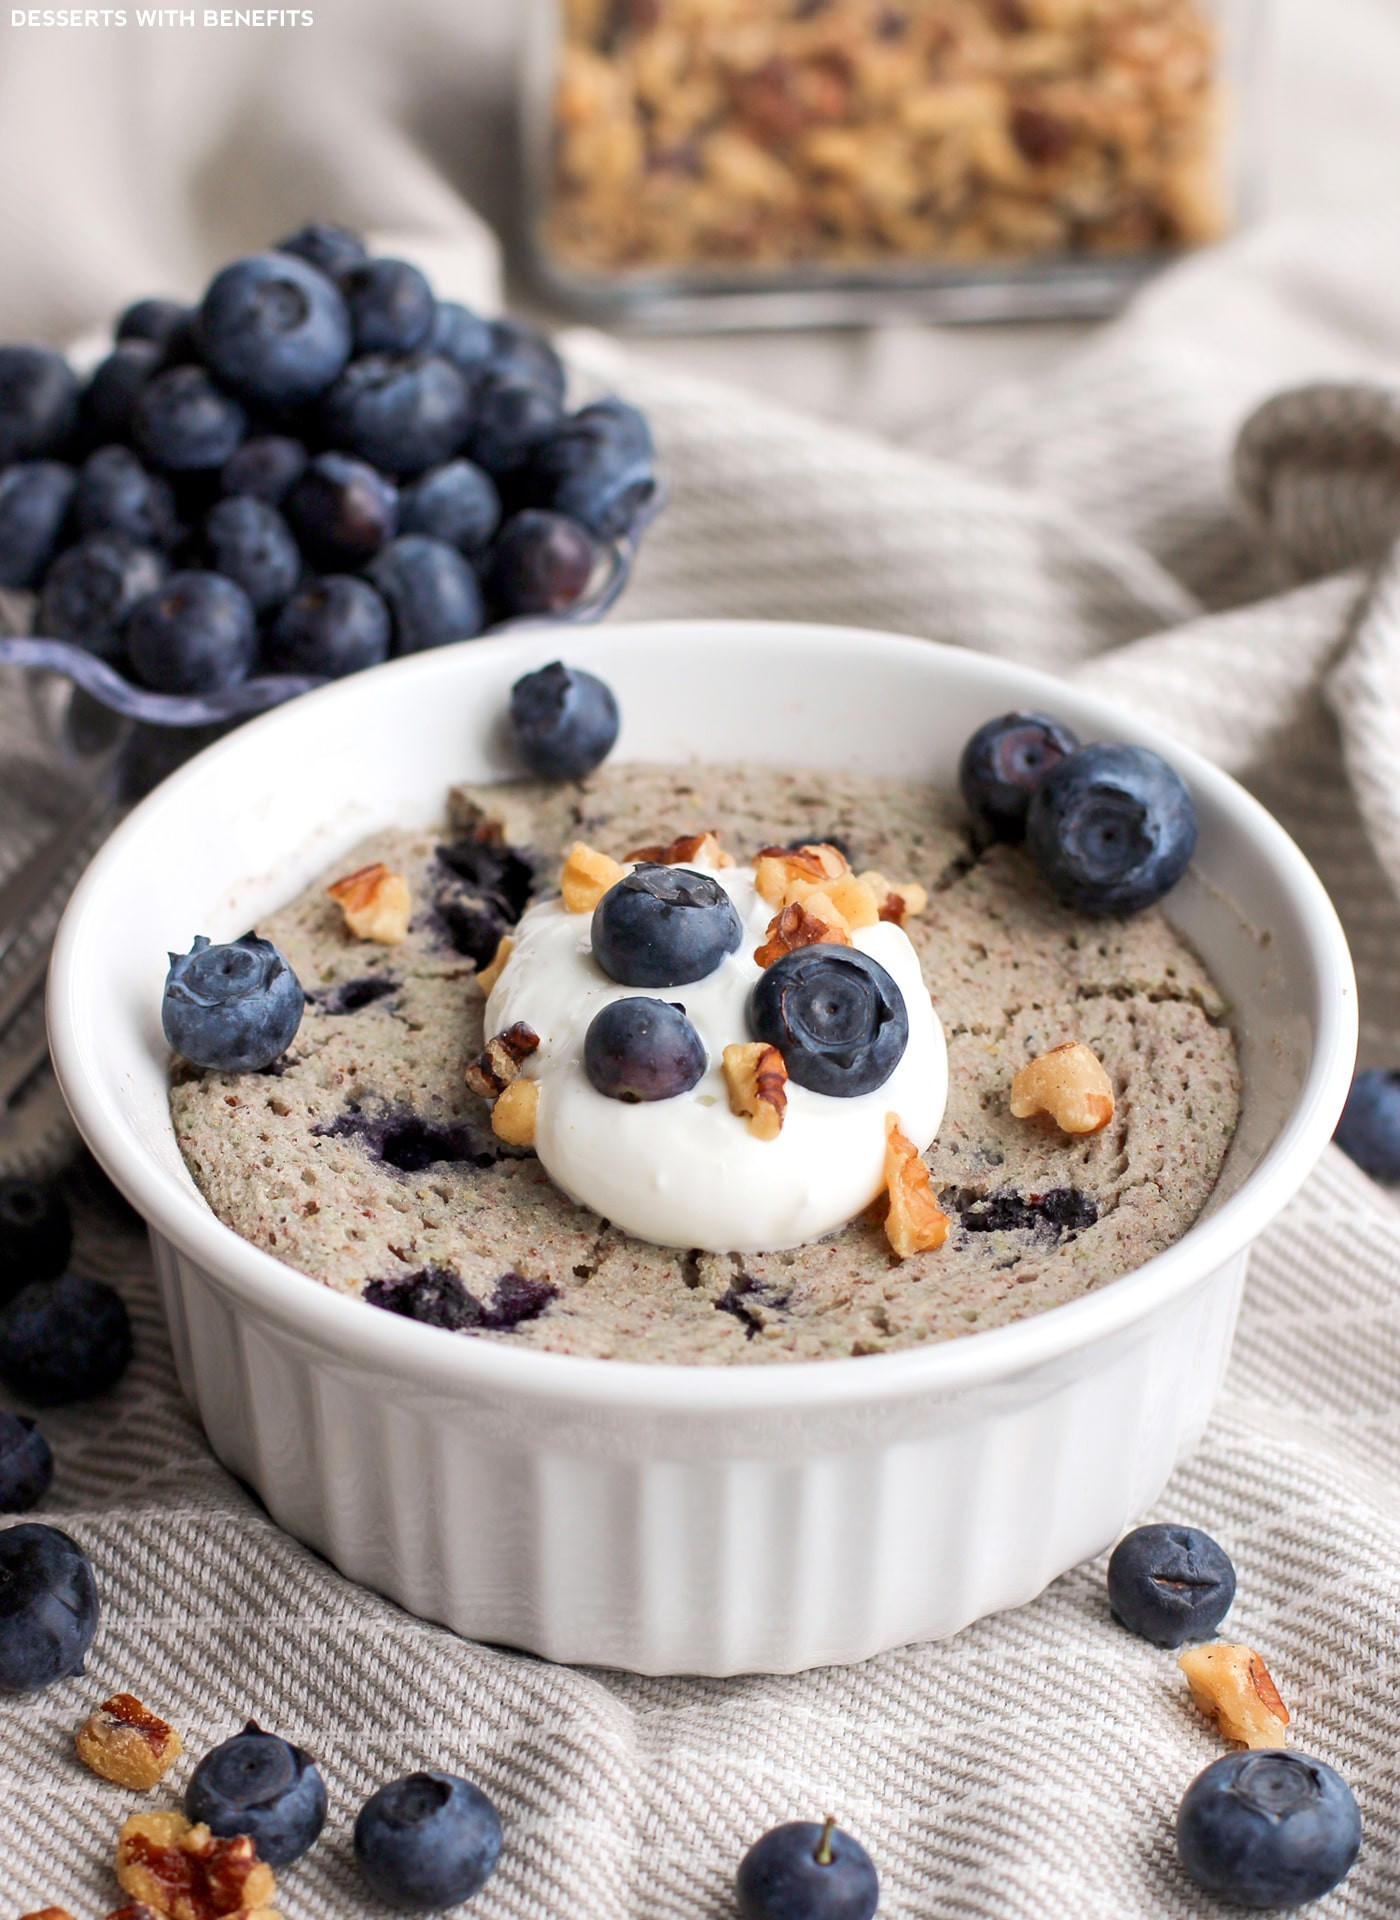 Healthy Blueberry Desserts  Desserts With Benefits Healthy Single Serving Blueberry